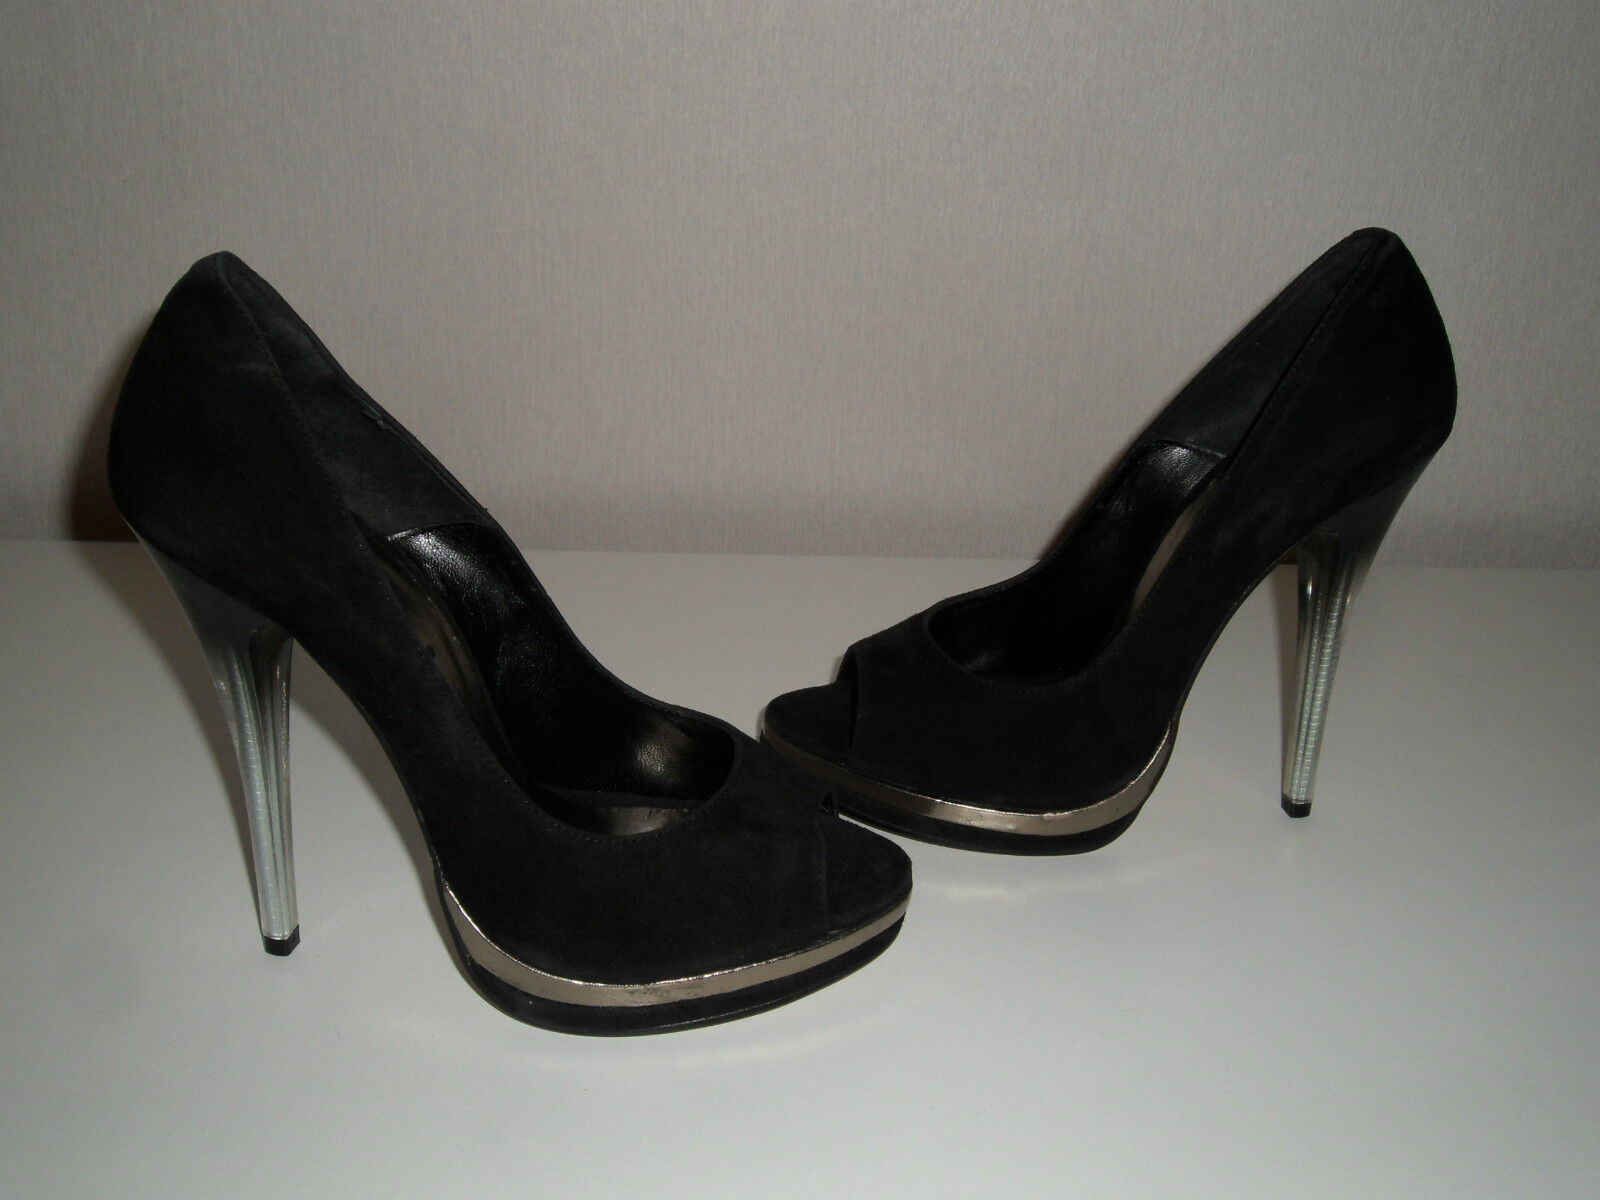 Chillany Pumps Gr. 38 40 Peeptoes High Heels schwarz NEU